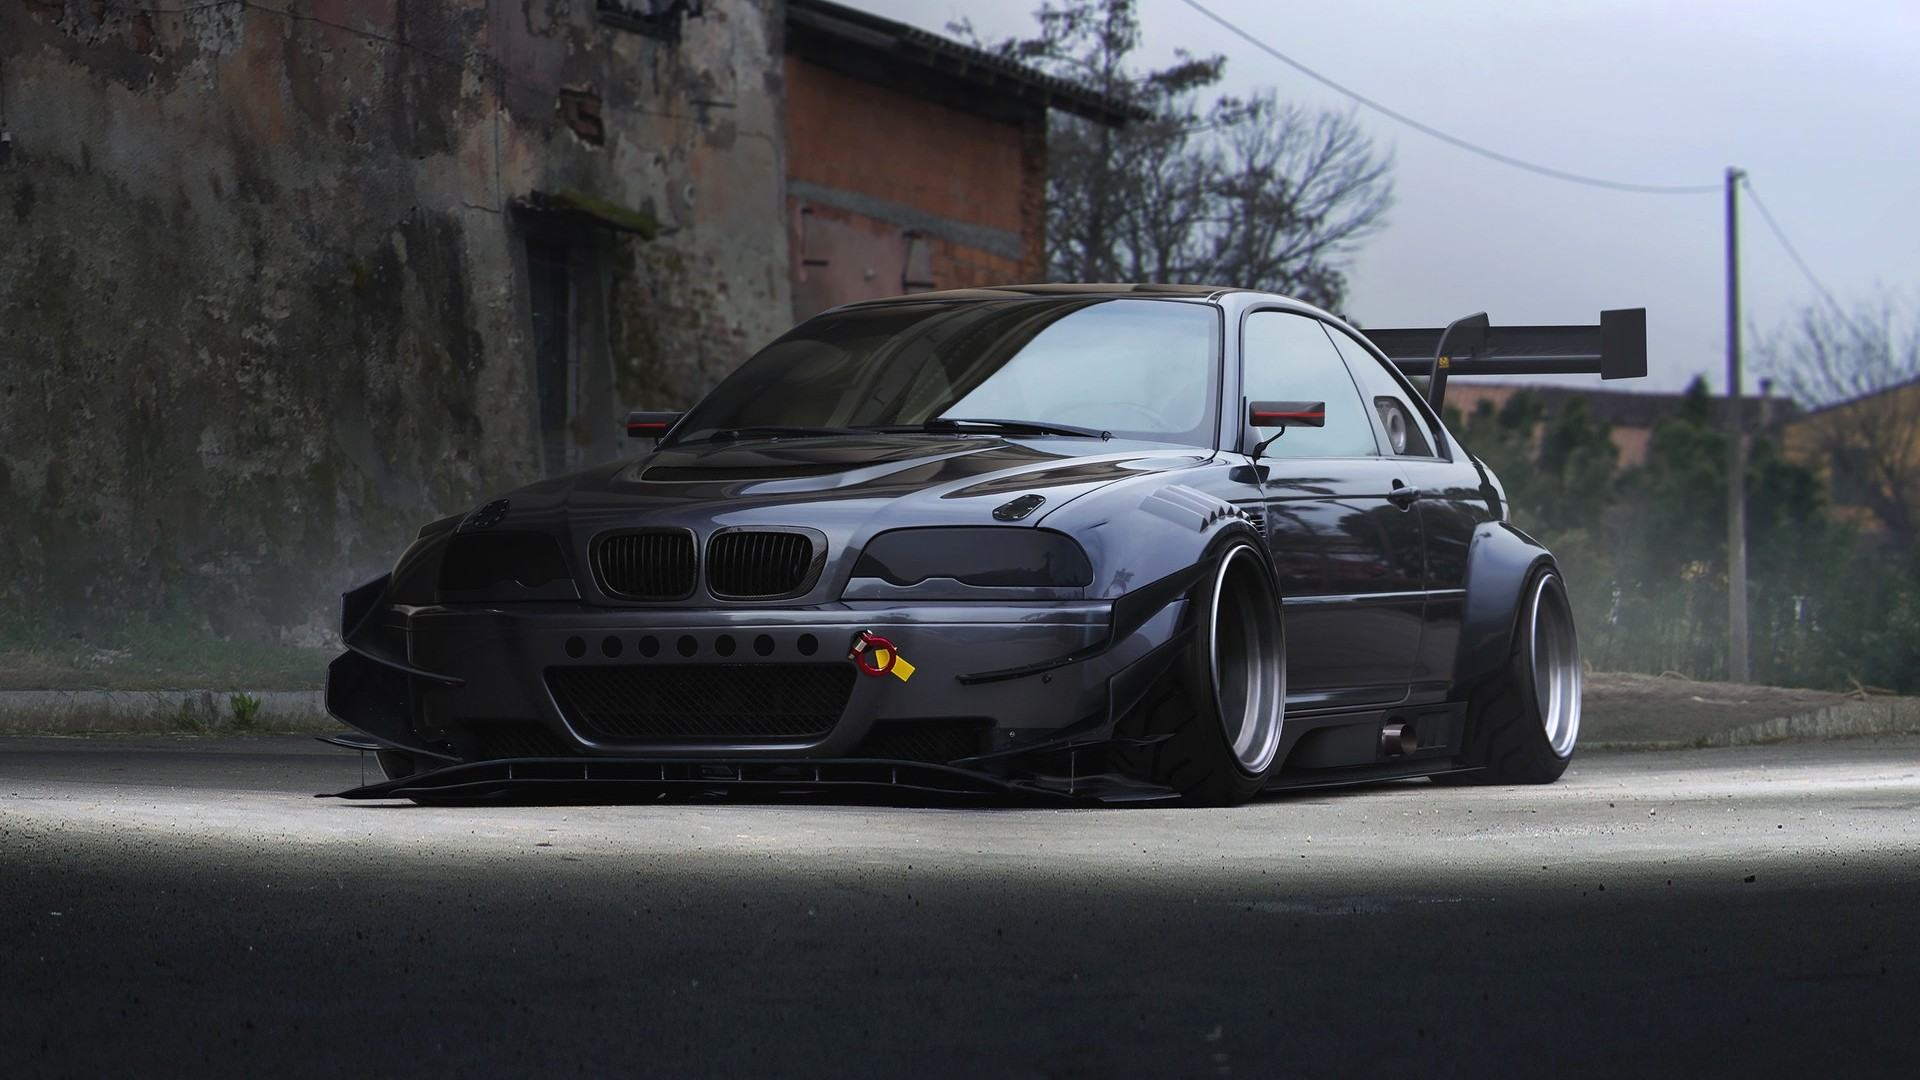 1920x1080 Bmw M3 Wallpaper 1920×1080 With Download E46 Side View Full Hd Hdtv 4